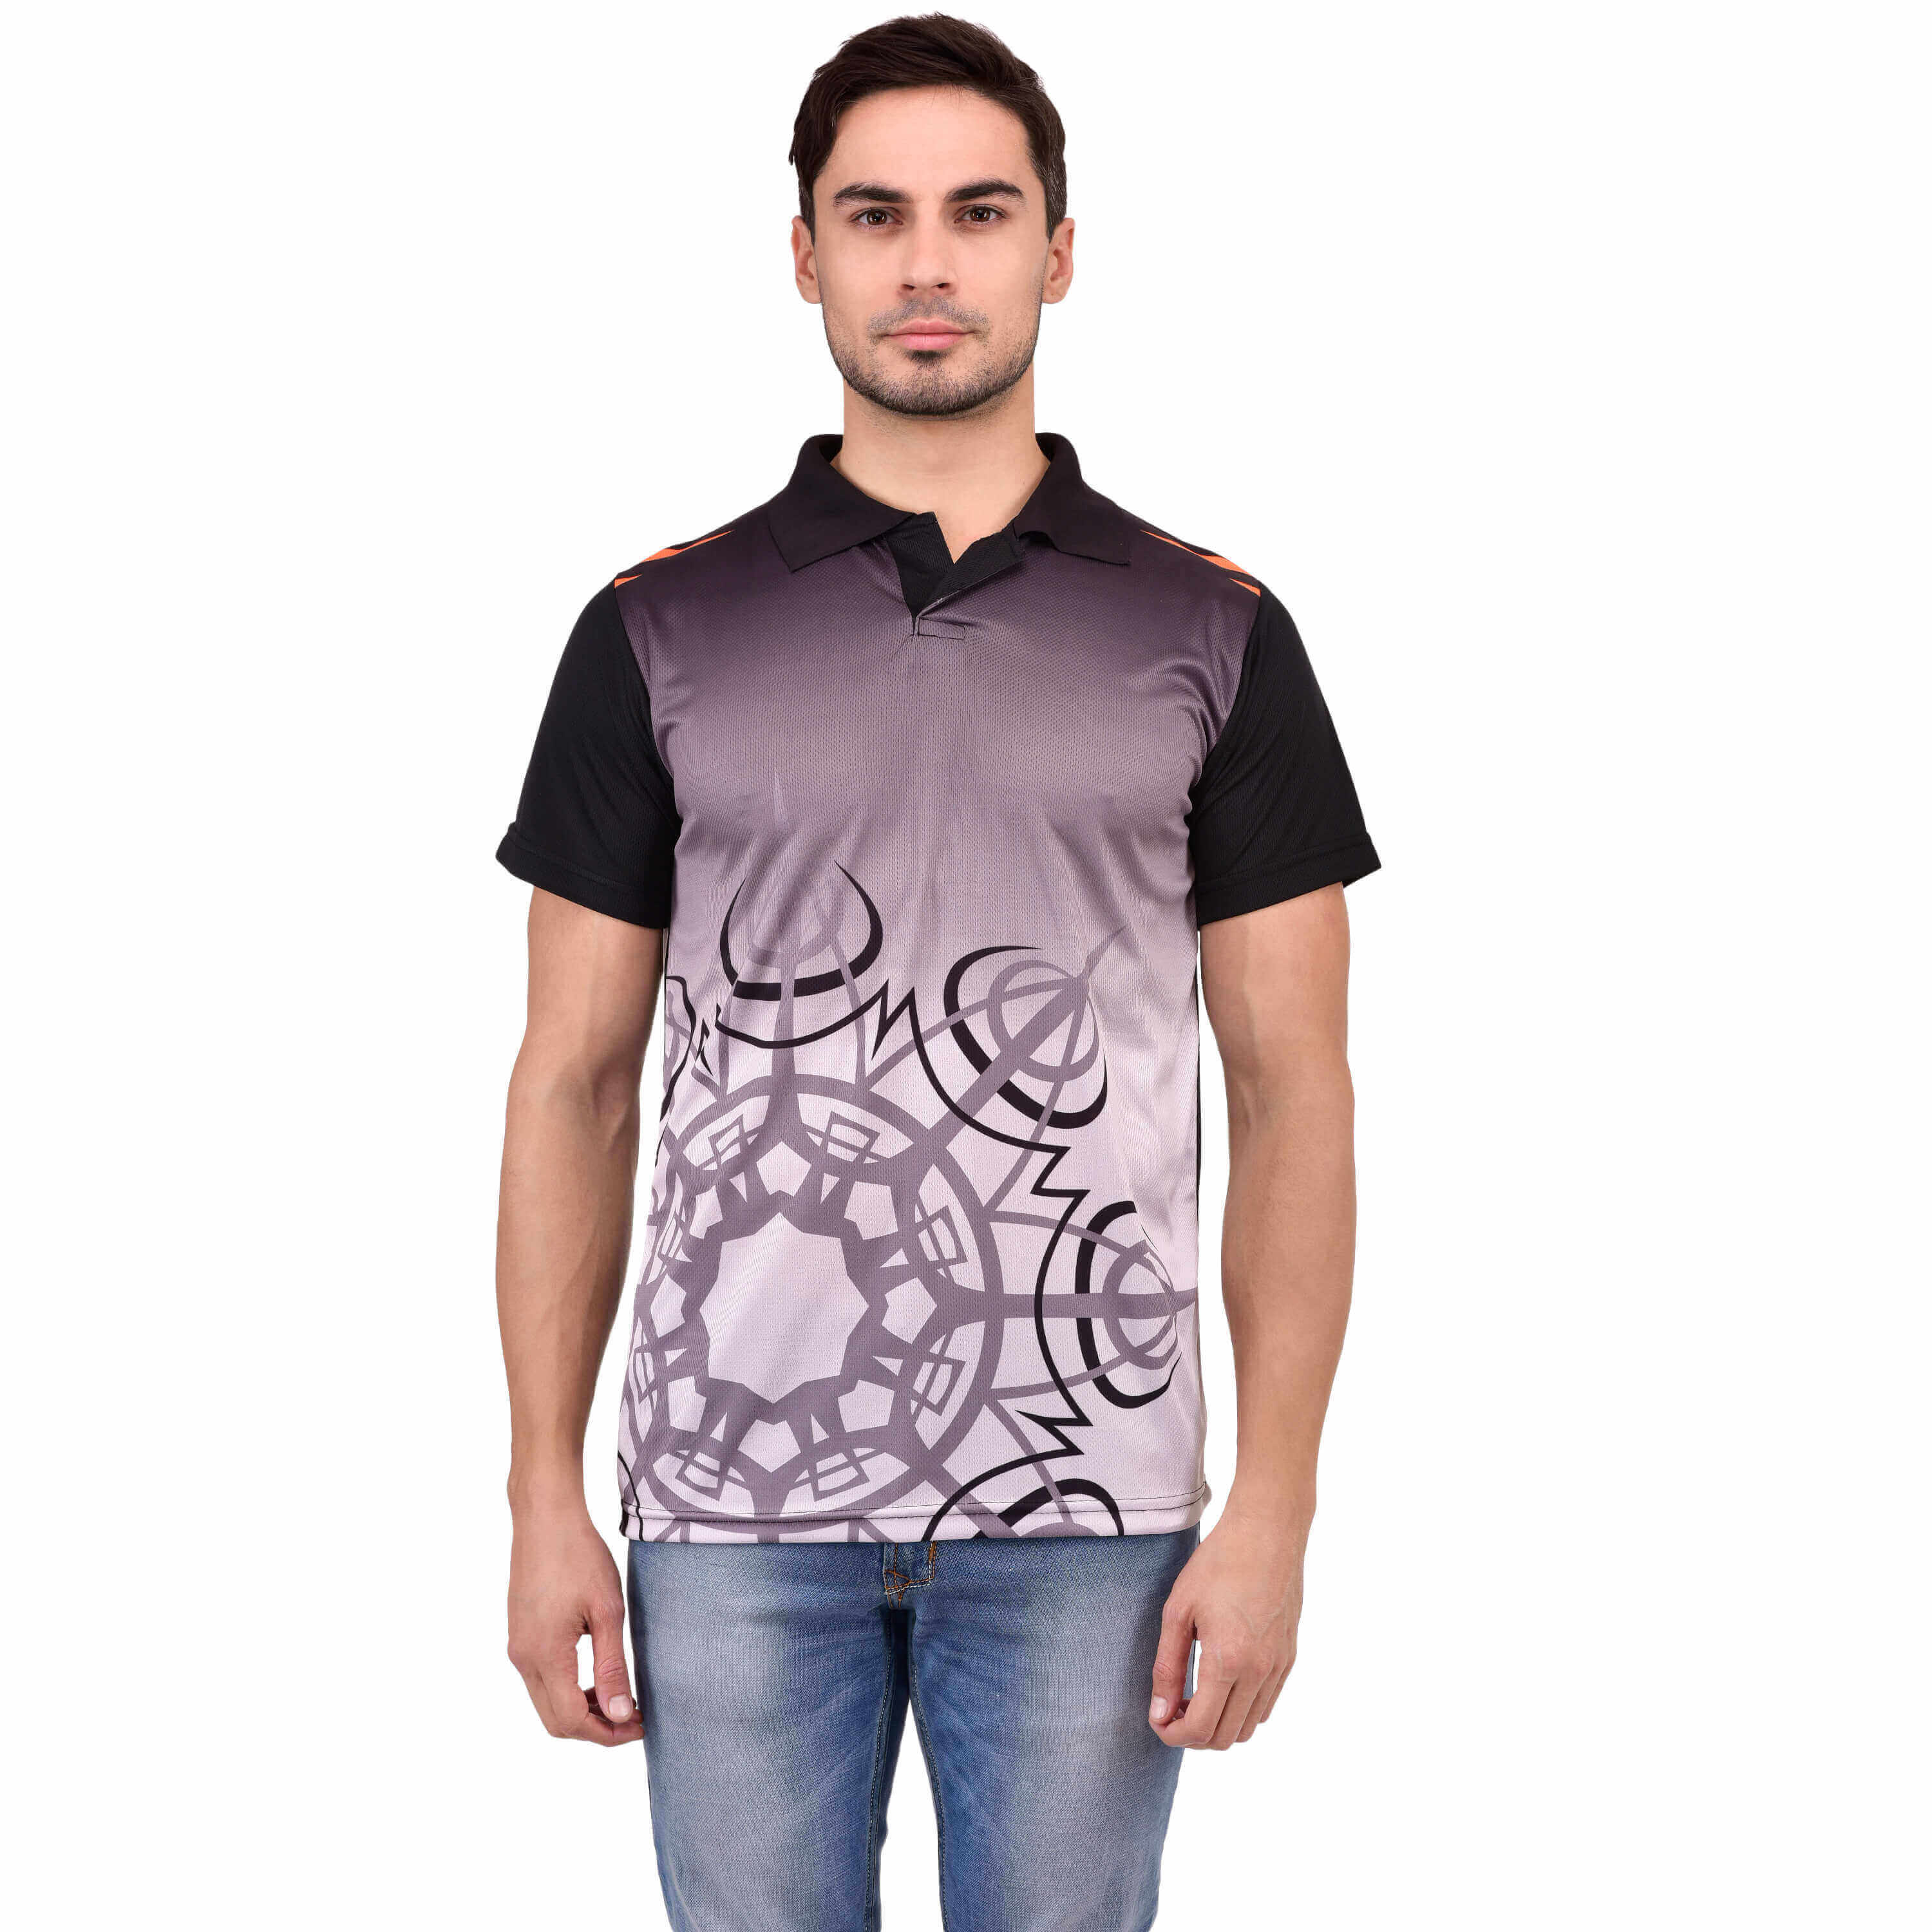 Cheap T Shirts Manufacturers in Solapur